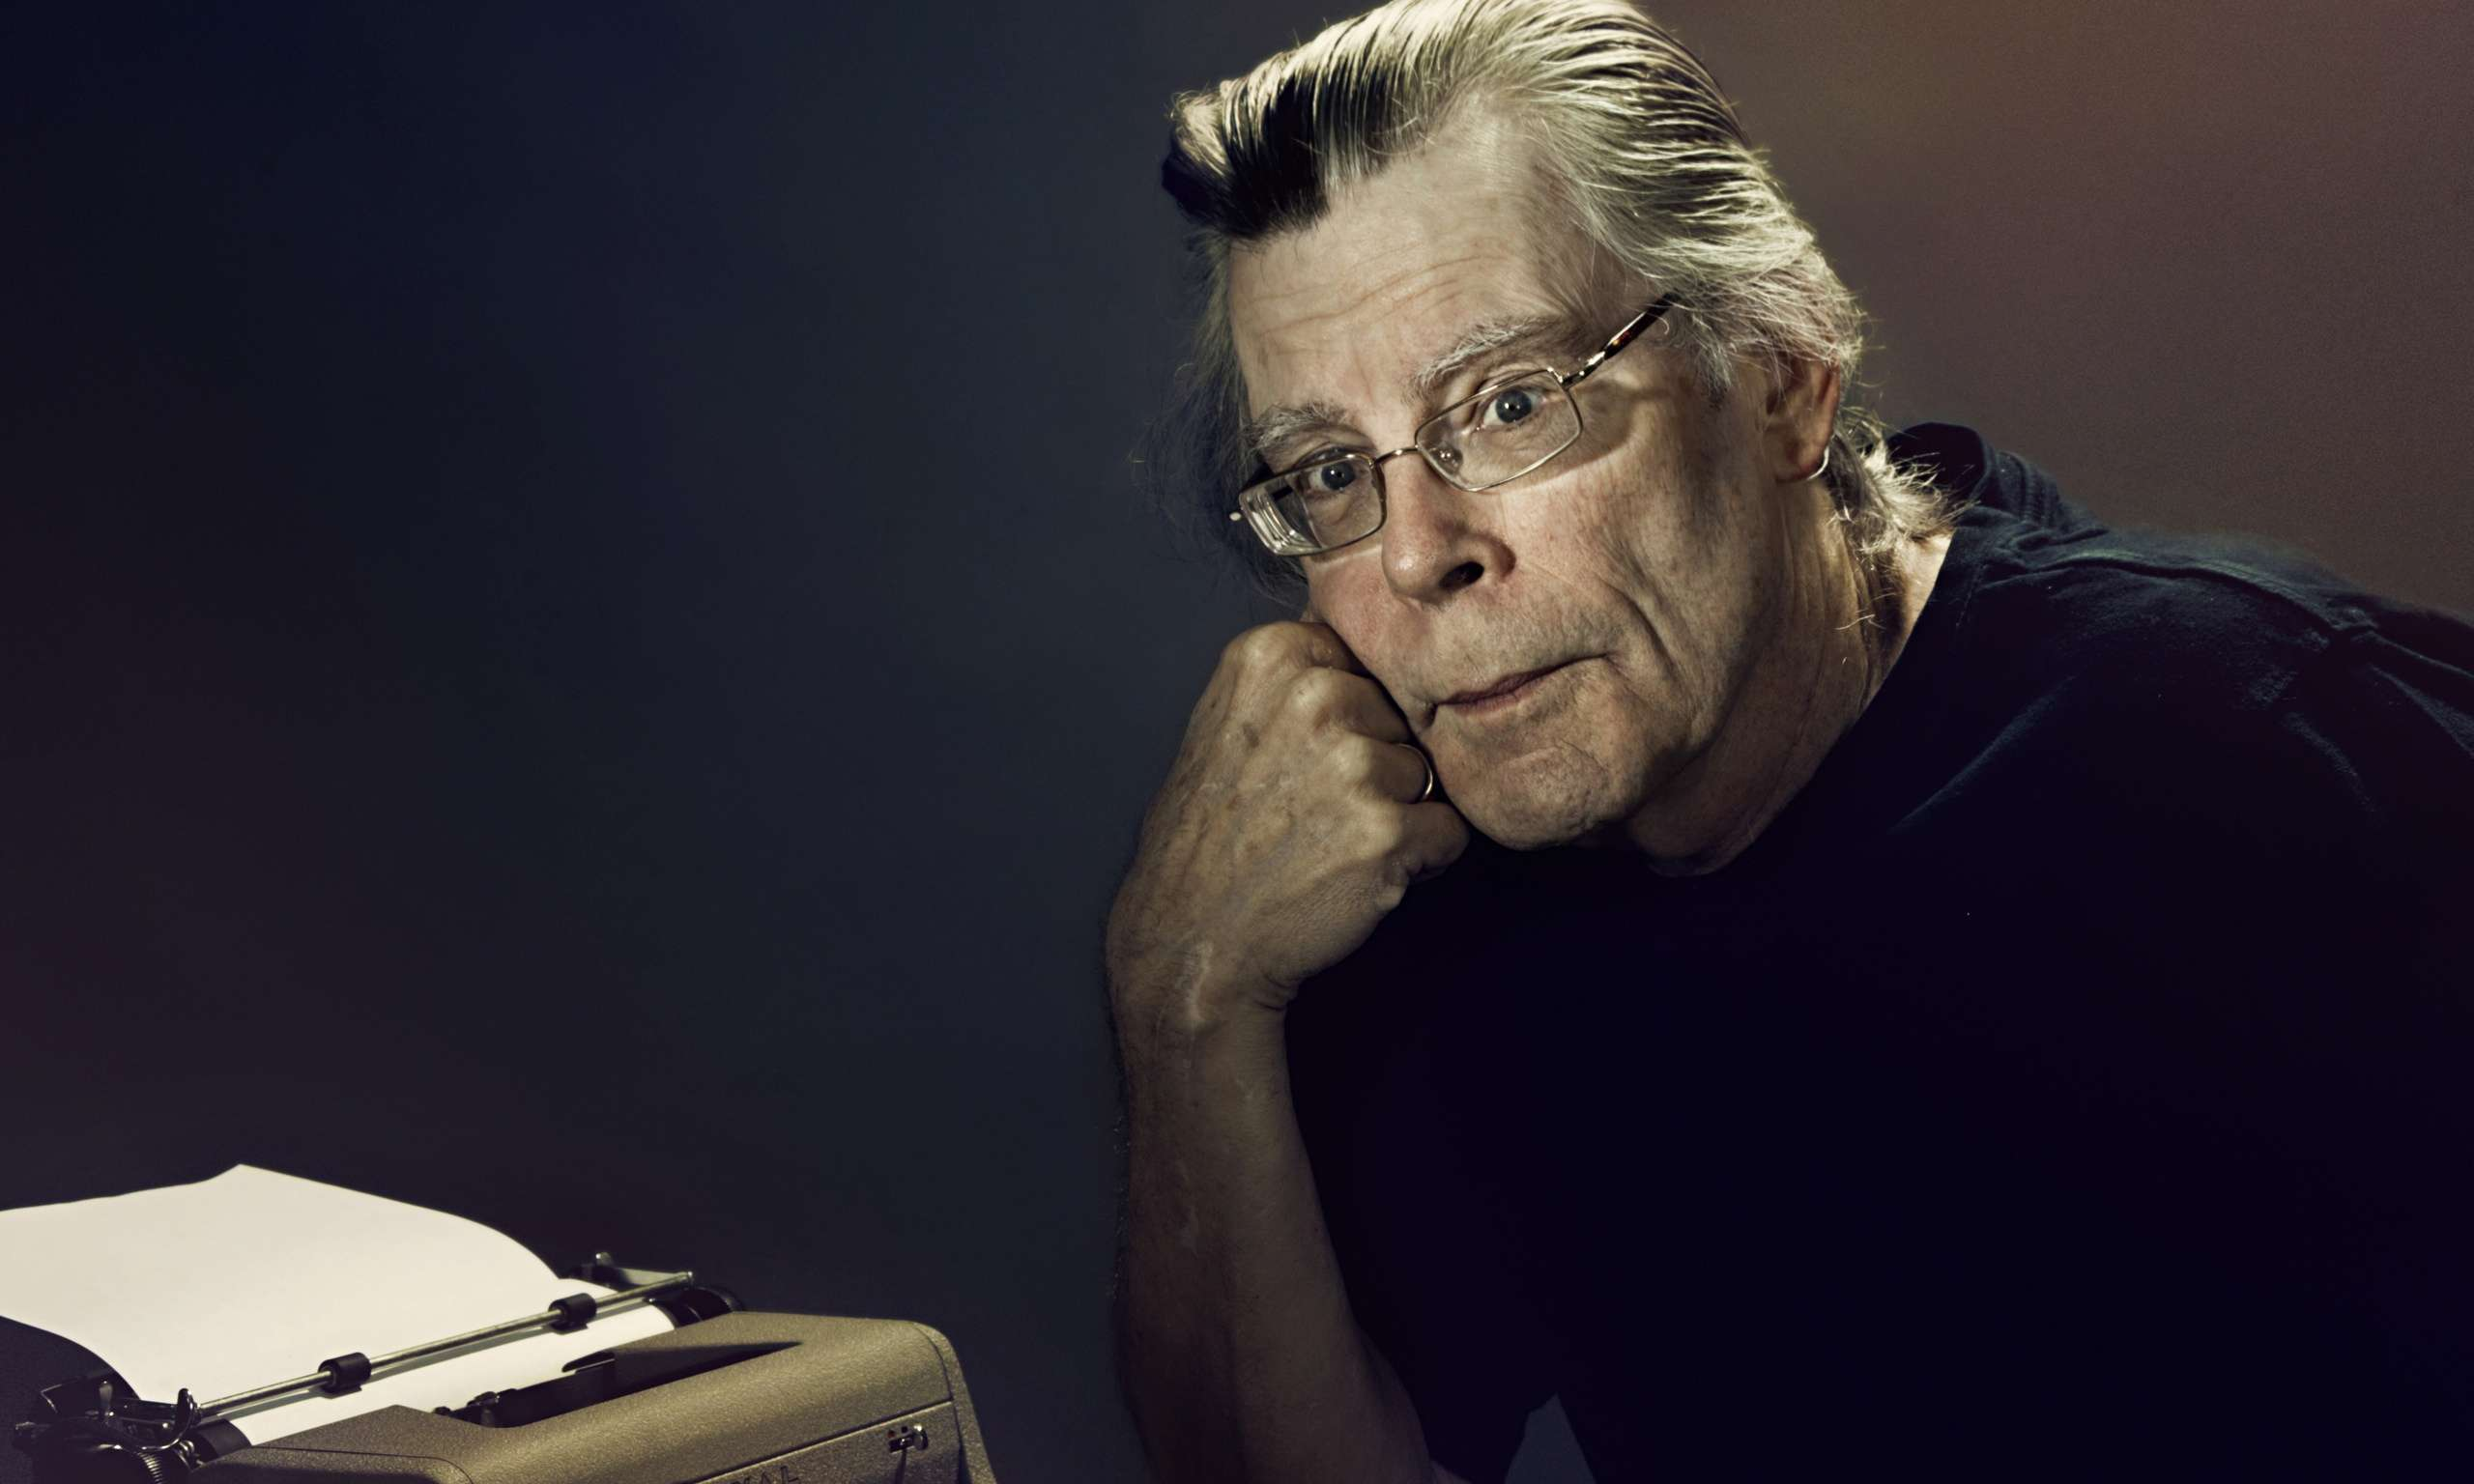 Stephen-King-Wallpaper-funny-face-free-download